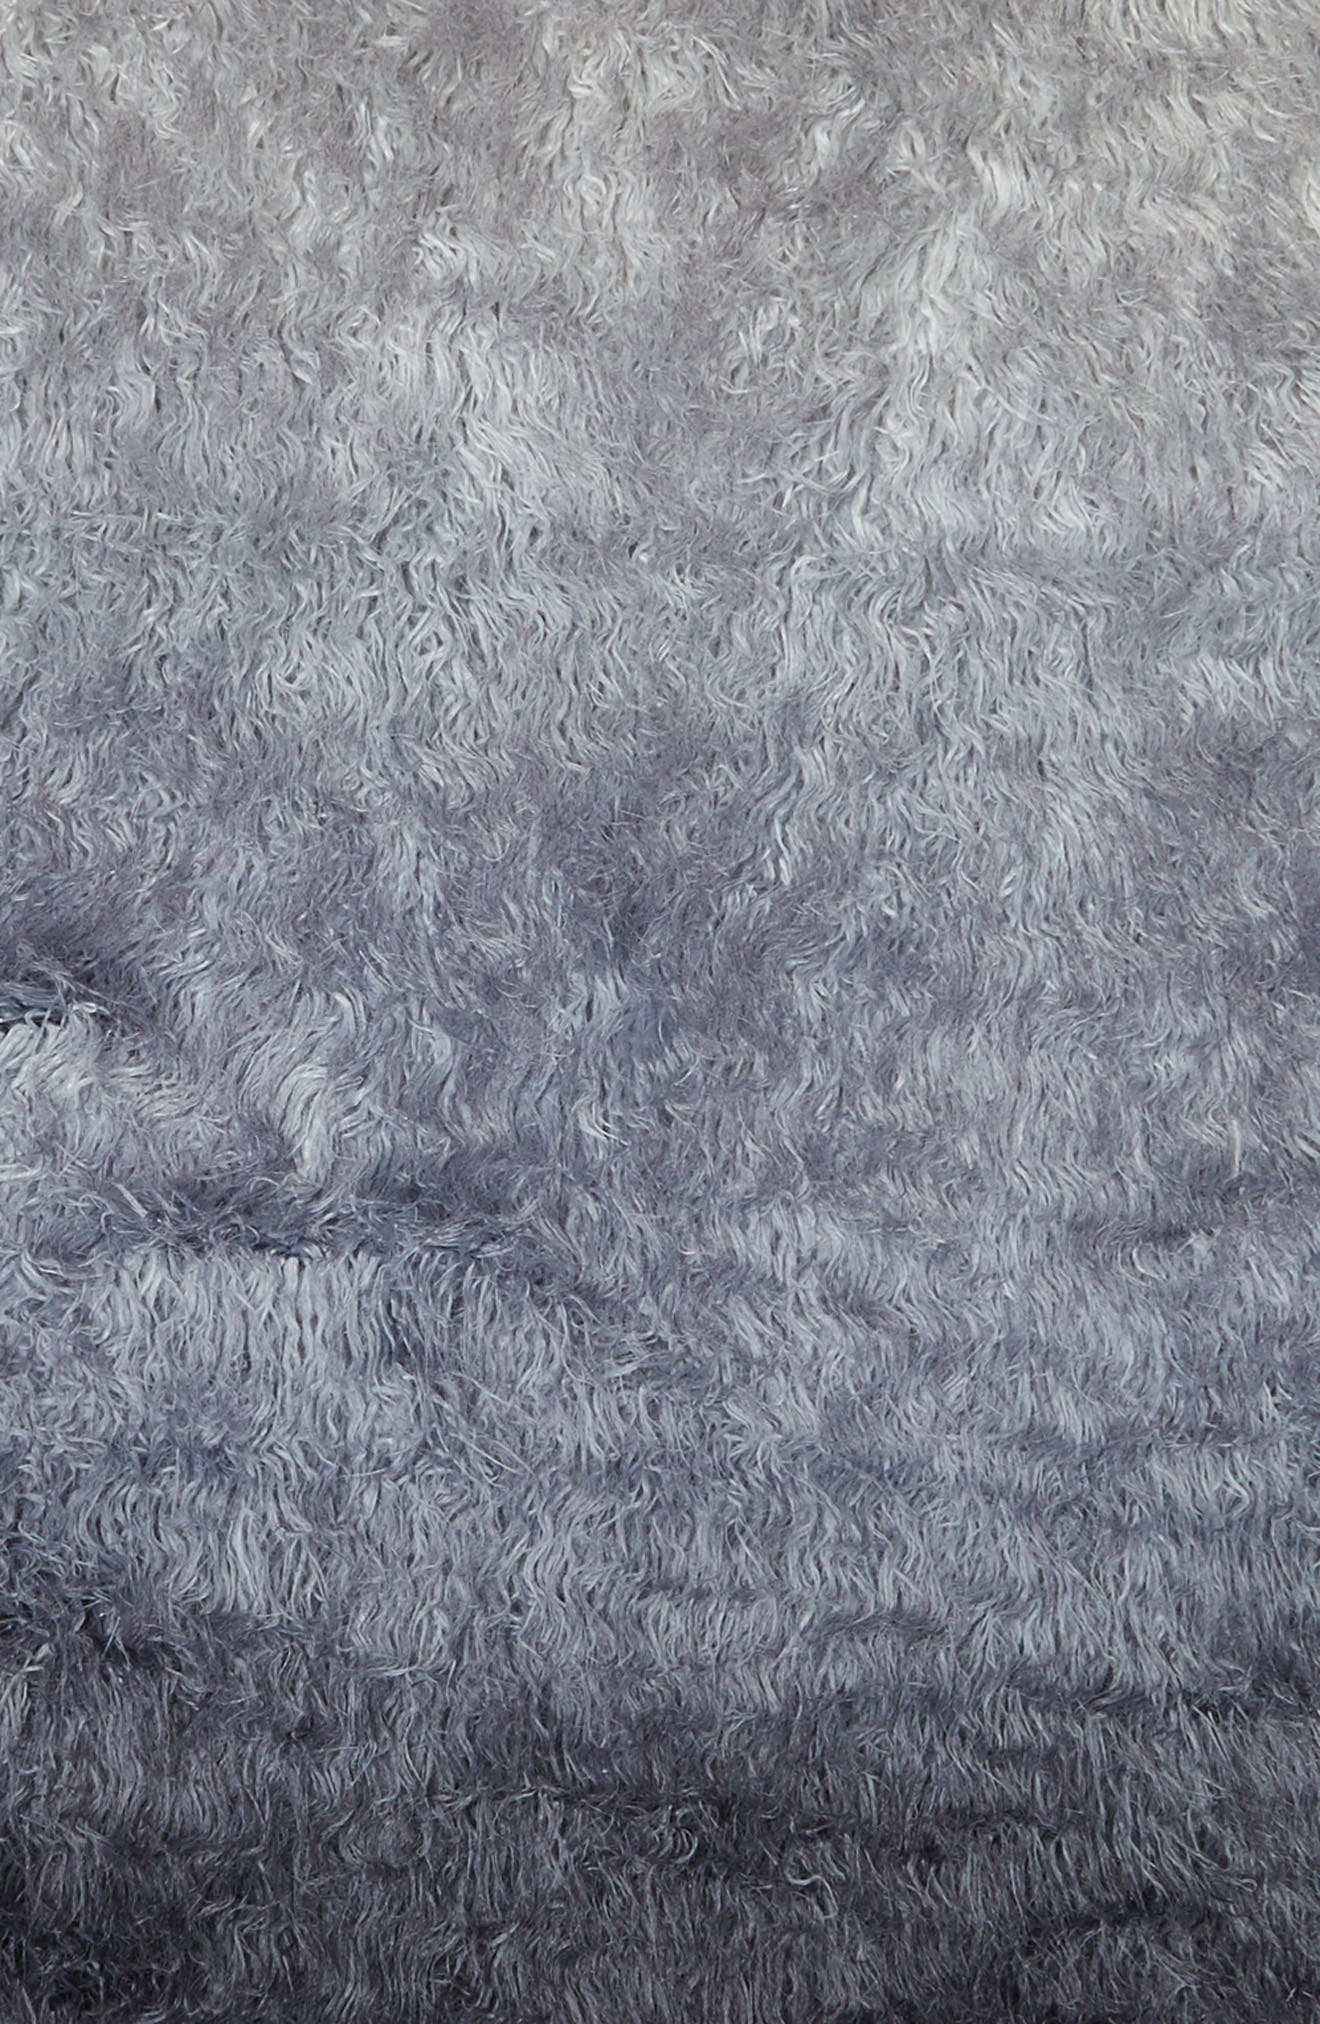 Ombré Faux Fur Rug,                             Alternate thumbnail 2, color,                             410